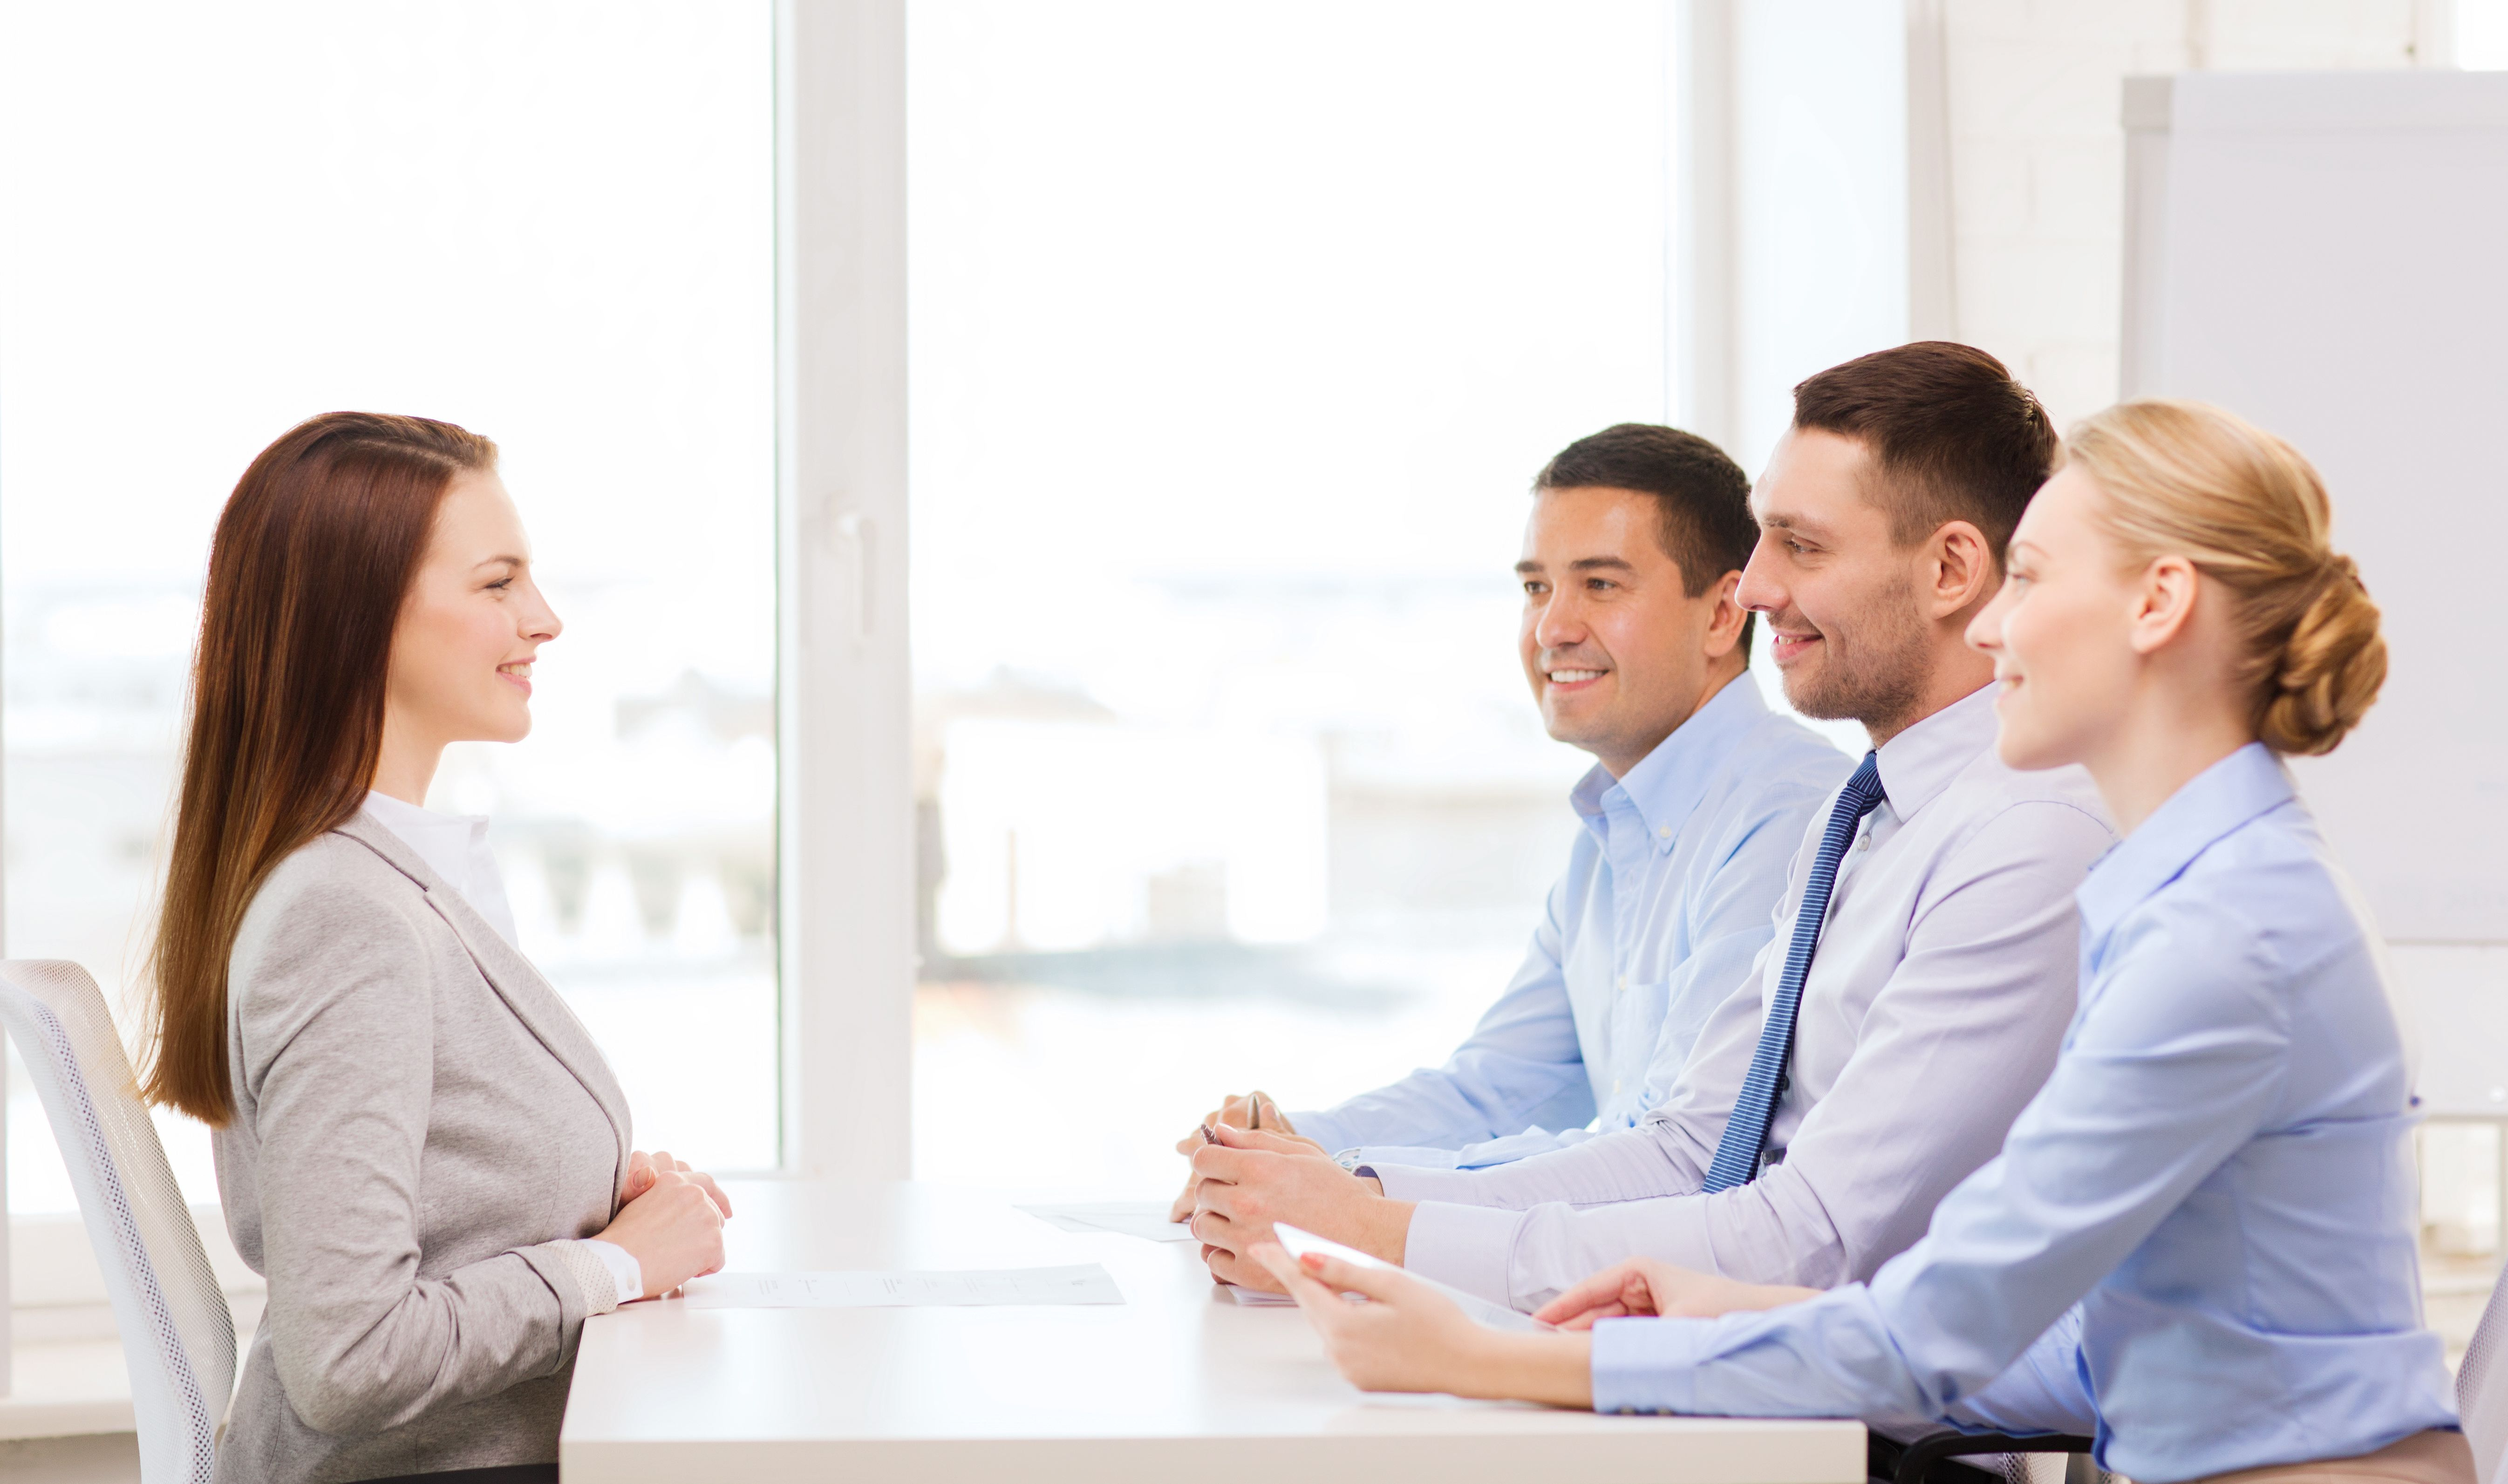 Questions To Ask At The End Of A Interview - My Job Interview Success